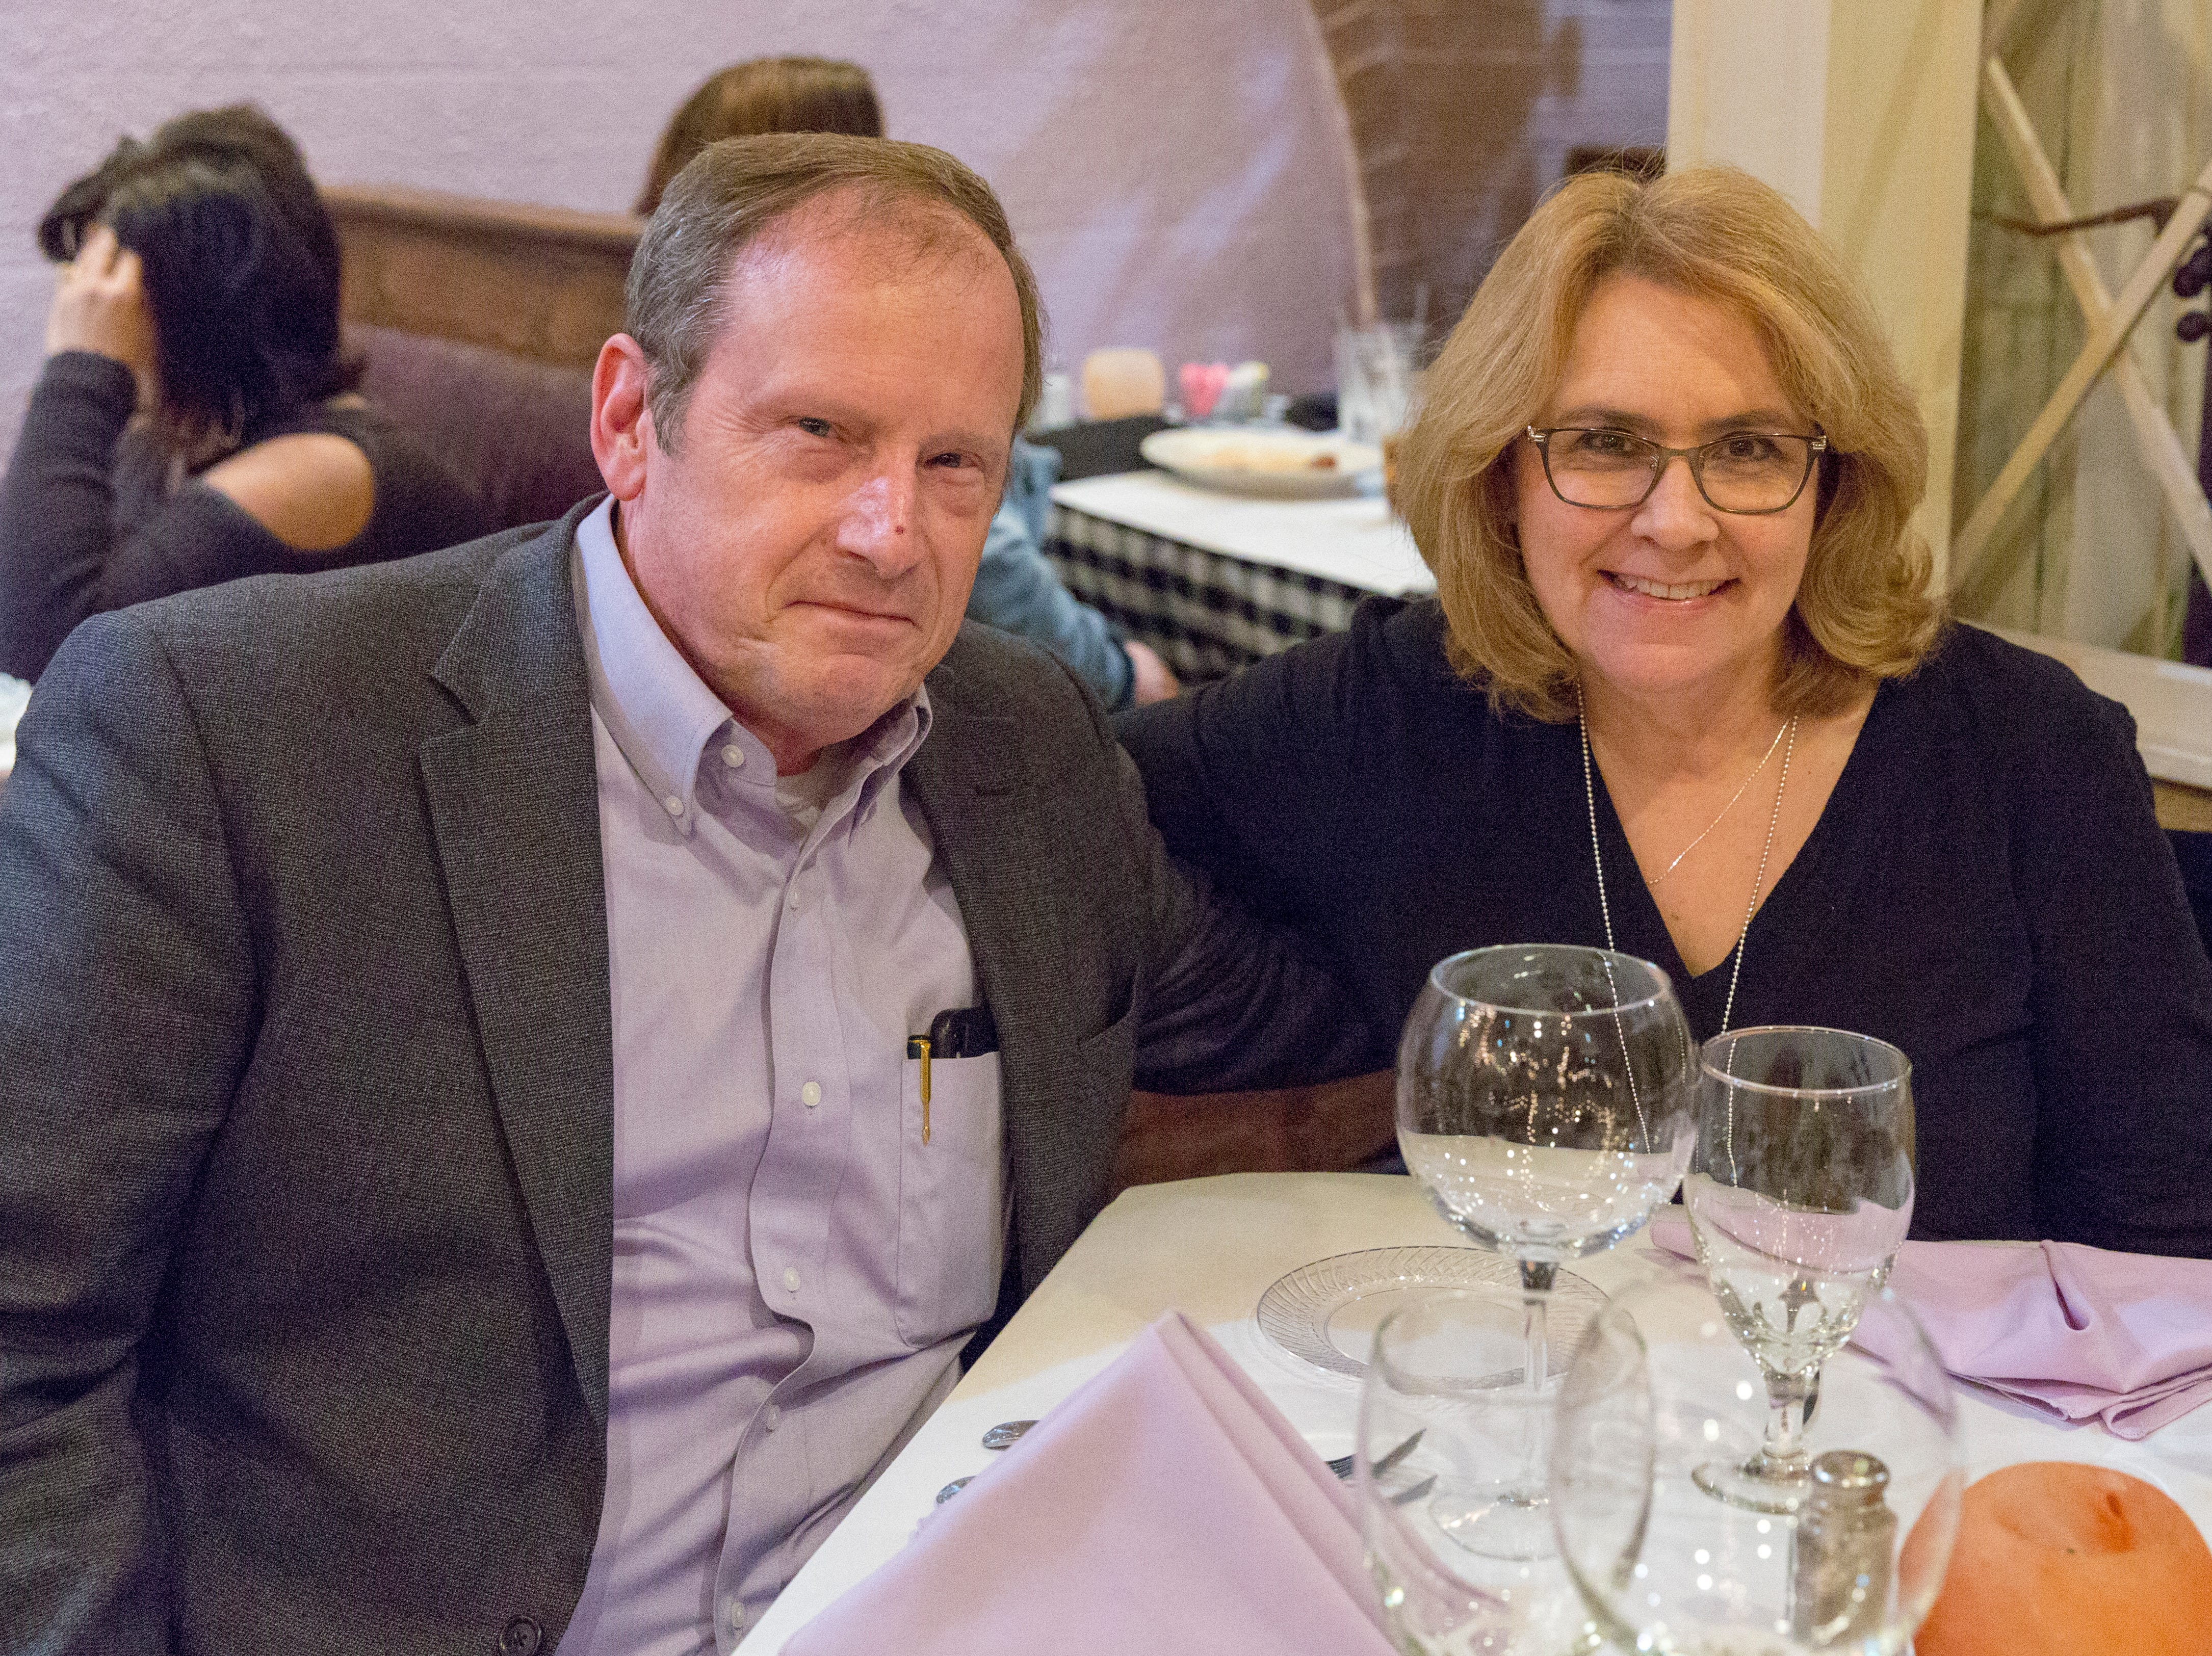 Michael and Debbie Anton attended the last Wine Tasting Dinner held at Baudo's Thursday night January 17, 2019.